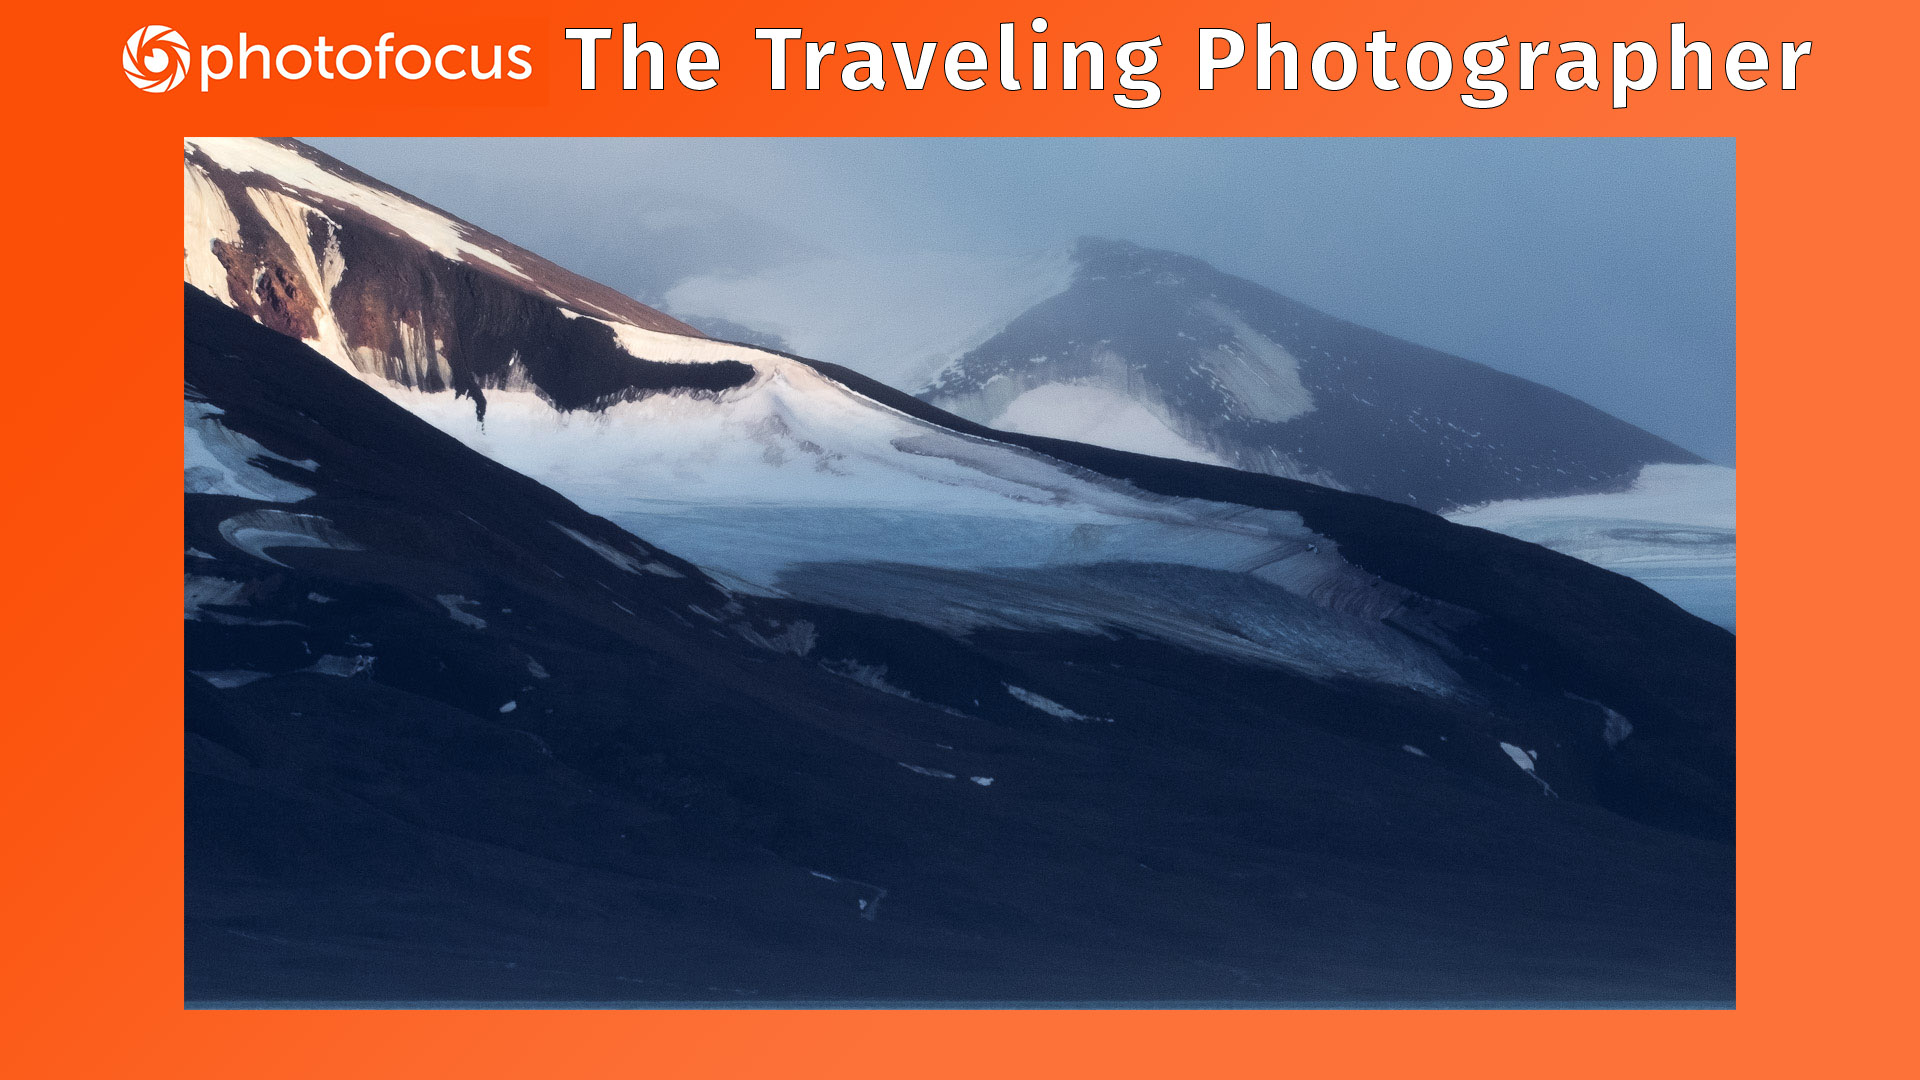 Svalbard (Walruses, polar bears and glaciers, oh my!): Part 1 (Choosing an expedition) | Photofocus